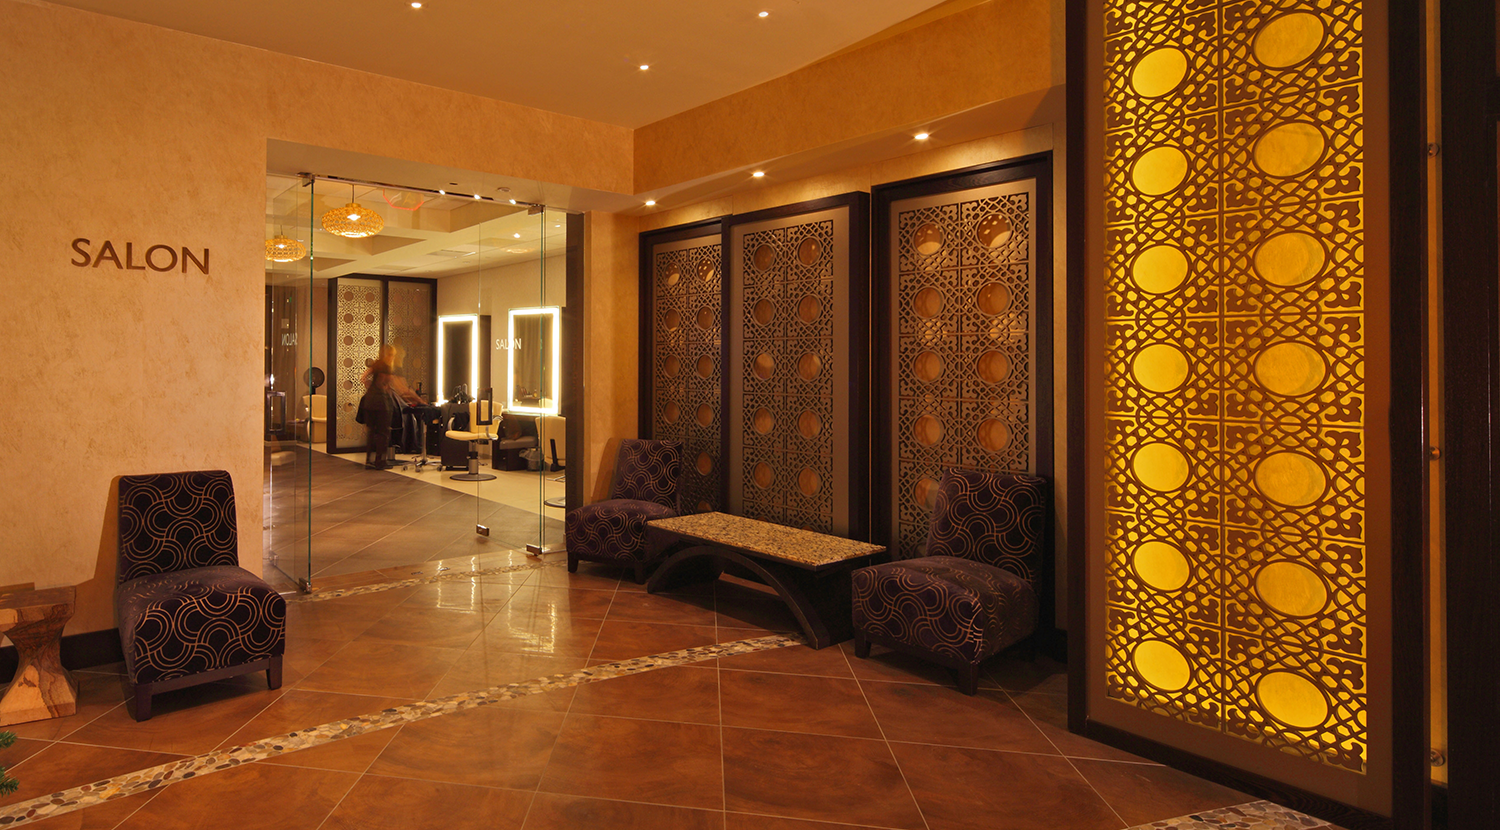 Harrah's Casino and Resort - a Hospitality Project by Atmosphere Commercial Interiors Hospitality Procurement Advisory